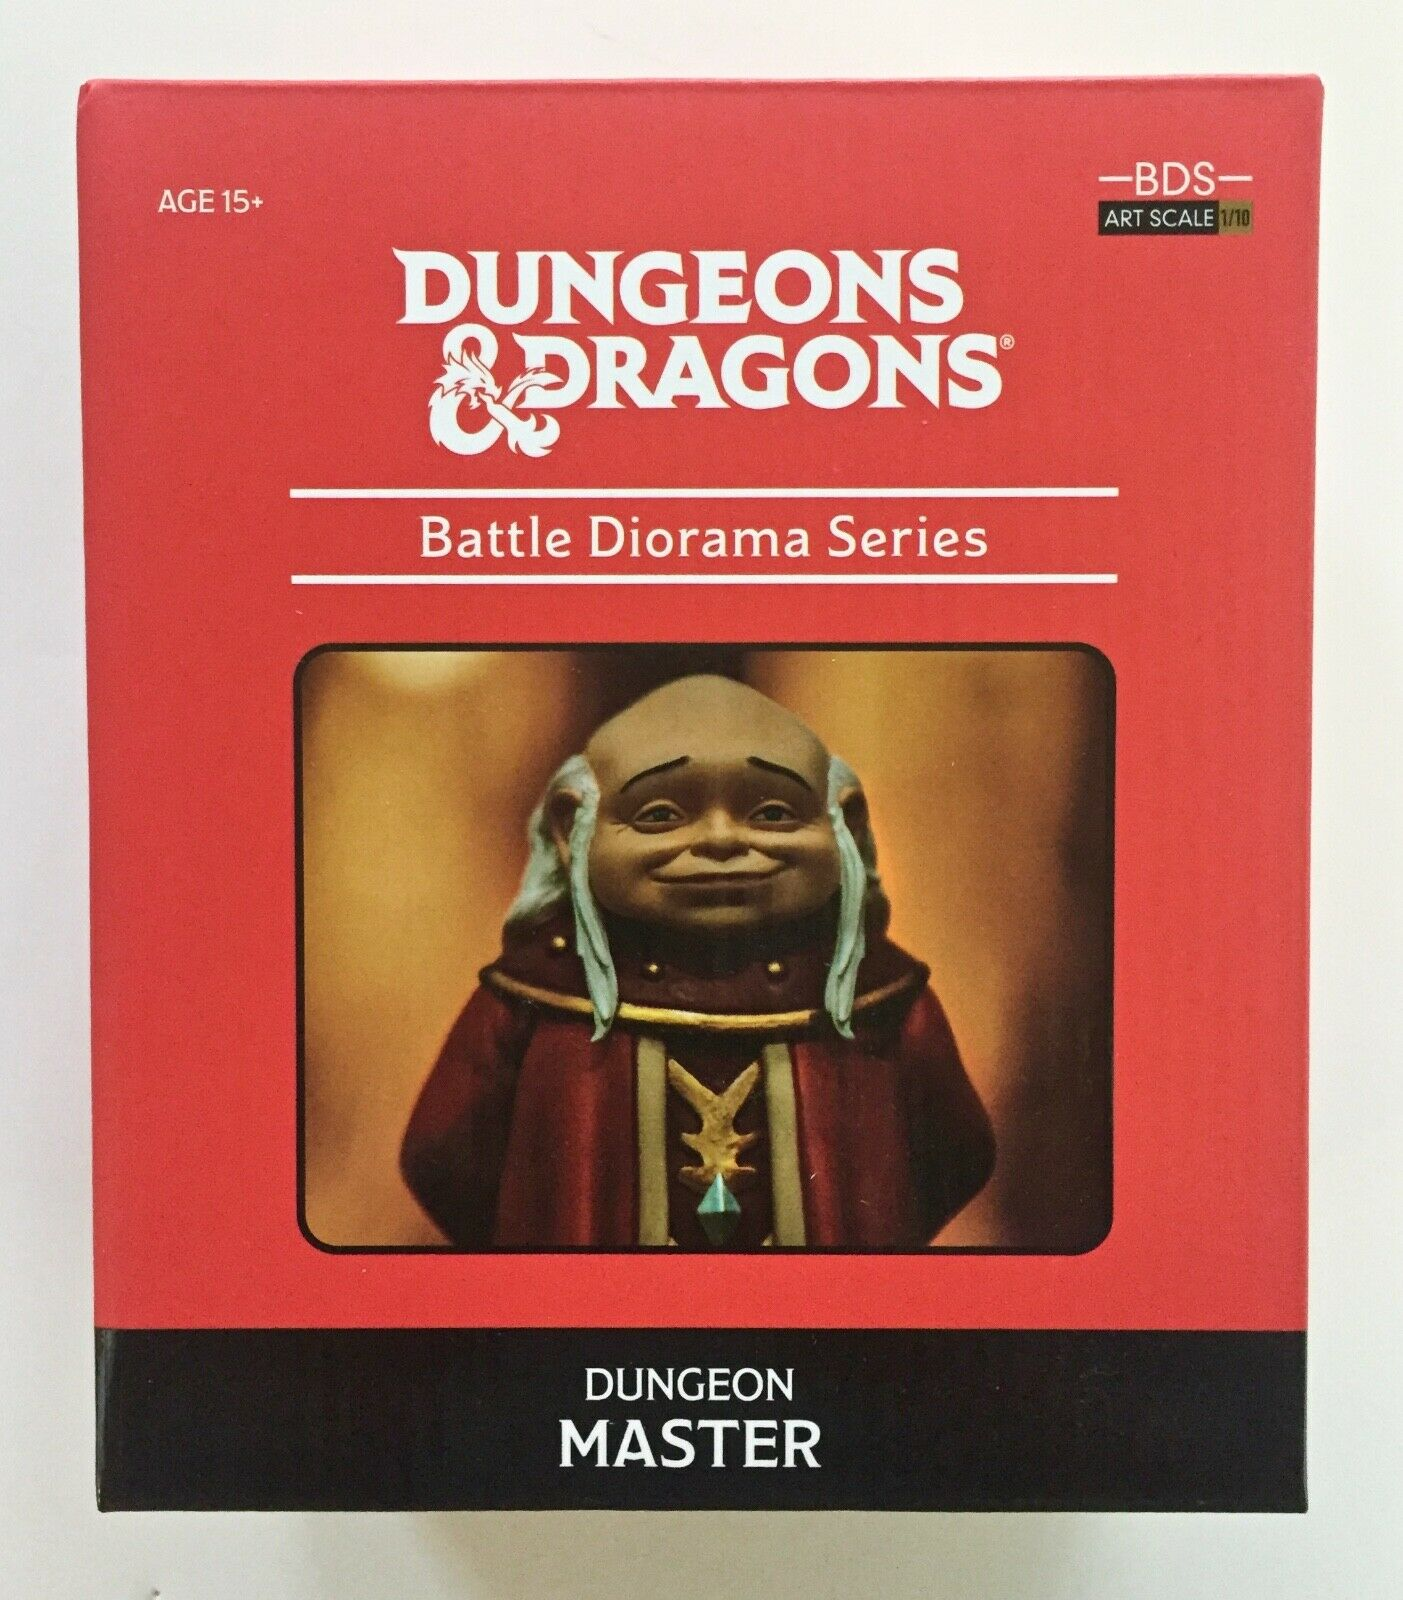 Dungeons & Dragons Dungeon Master Iron Studios BDS Art Scale 1/10 Statue Figure on eBay thumbnail